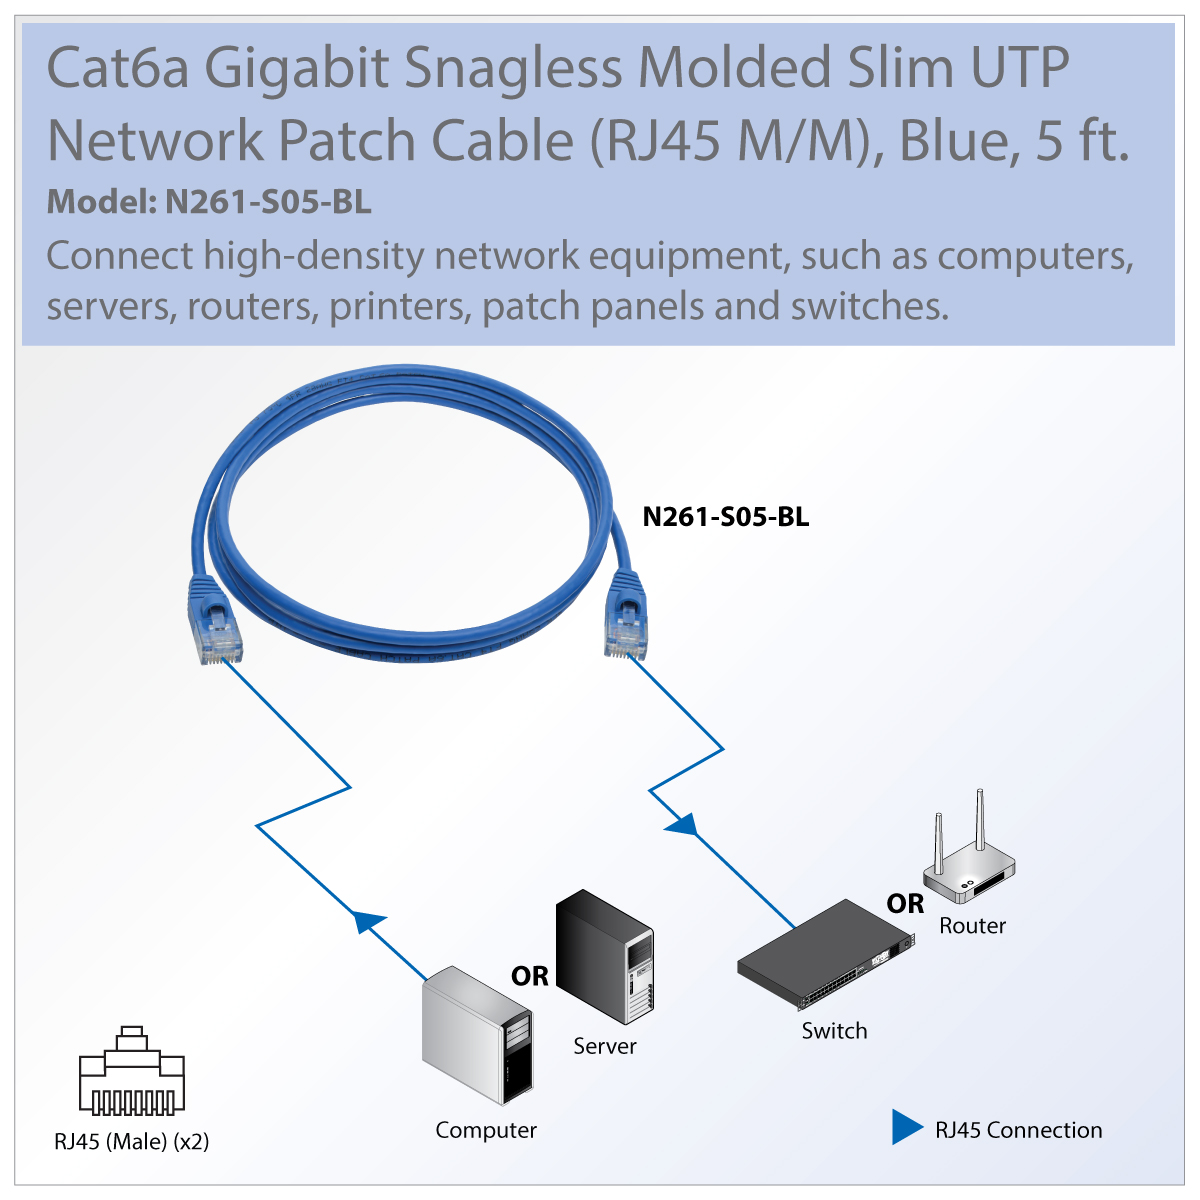 Tripp Lite Cat6a Gigabit Snagless Molded Slim Utp Patch Cable M Diagram Saves Space And Cuts The Clutter